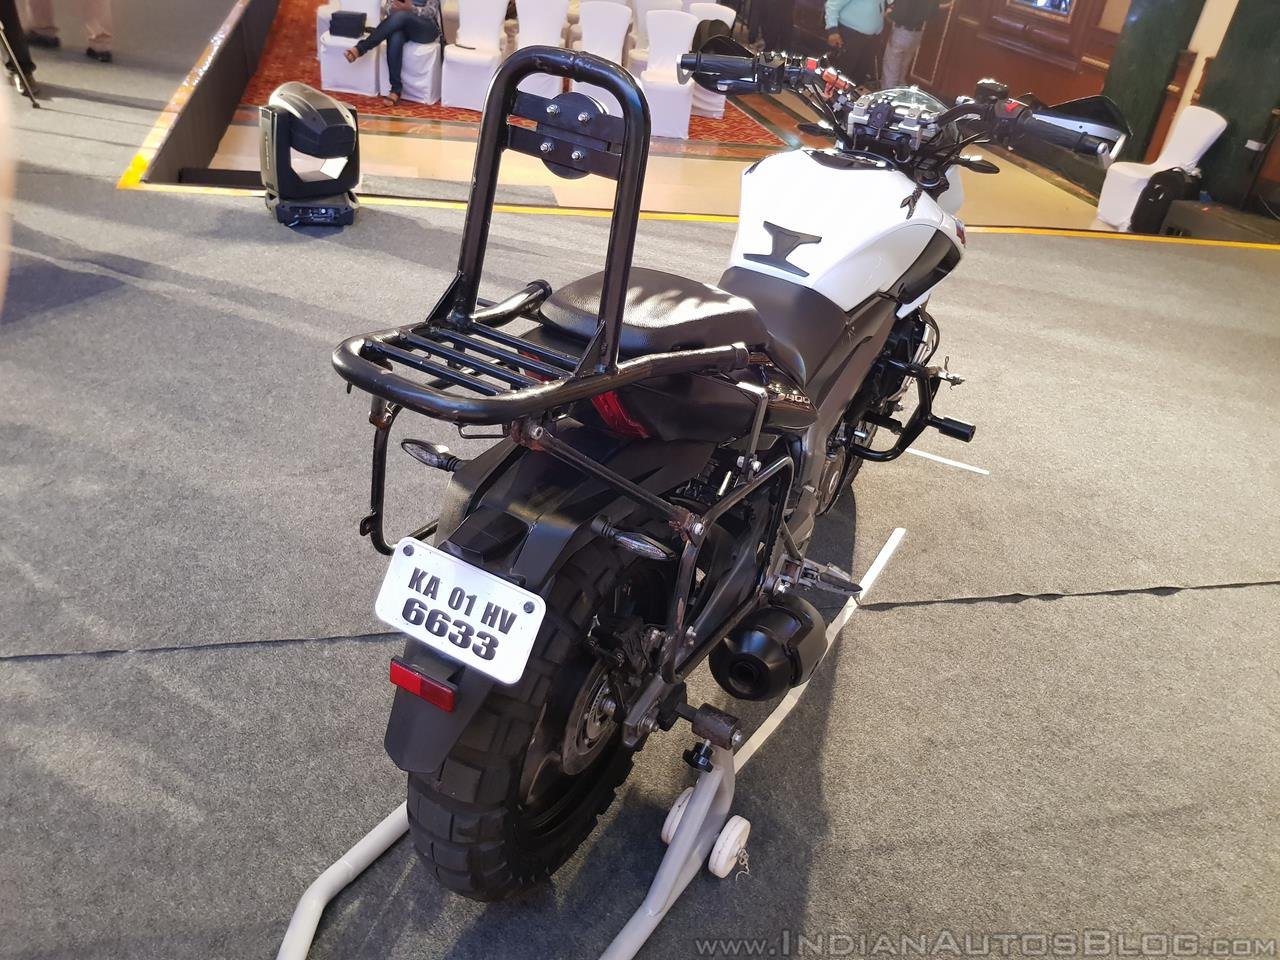 Bajaj Dominar 400 Trans Siberian Odeyssey rear right quarter